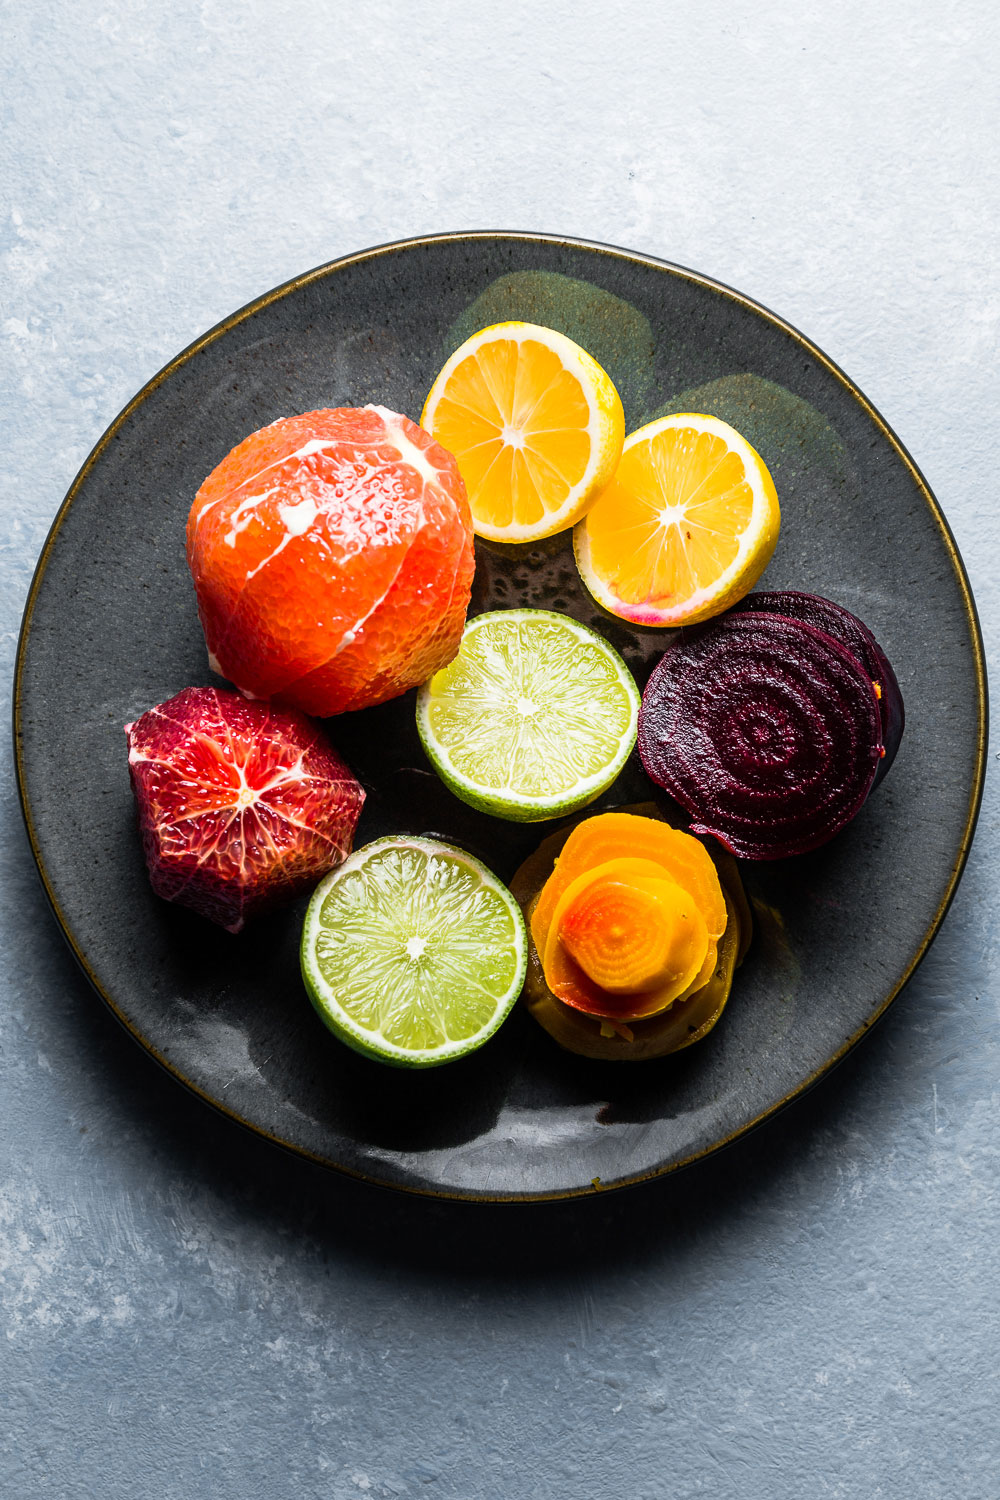 Citrus and Beet Salad Ingredients